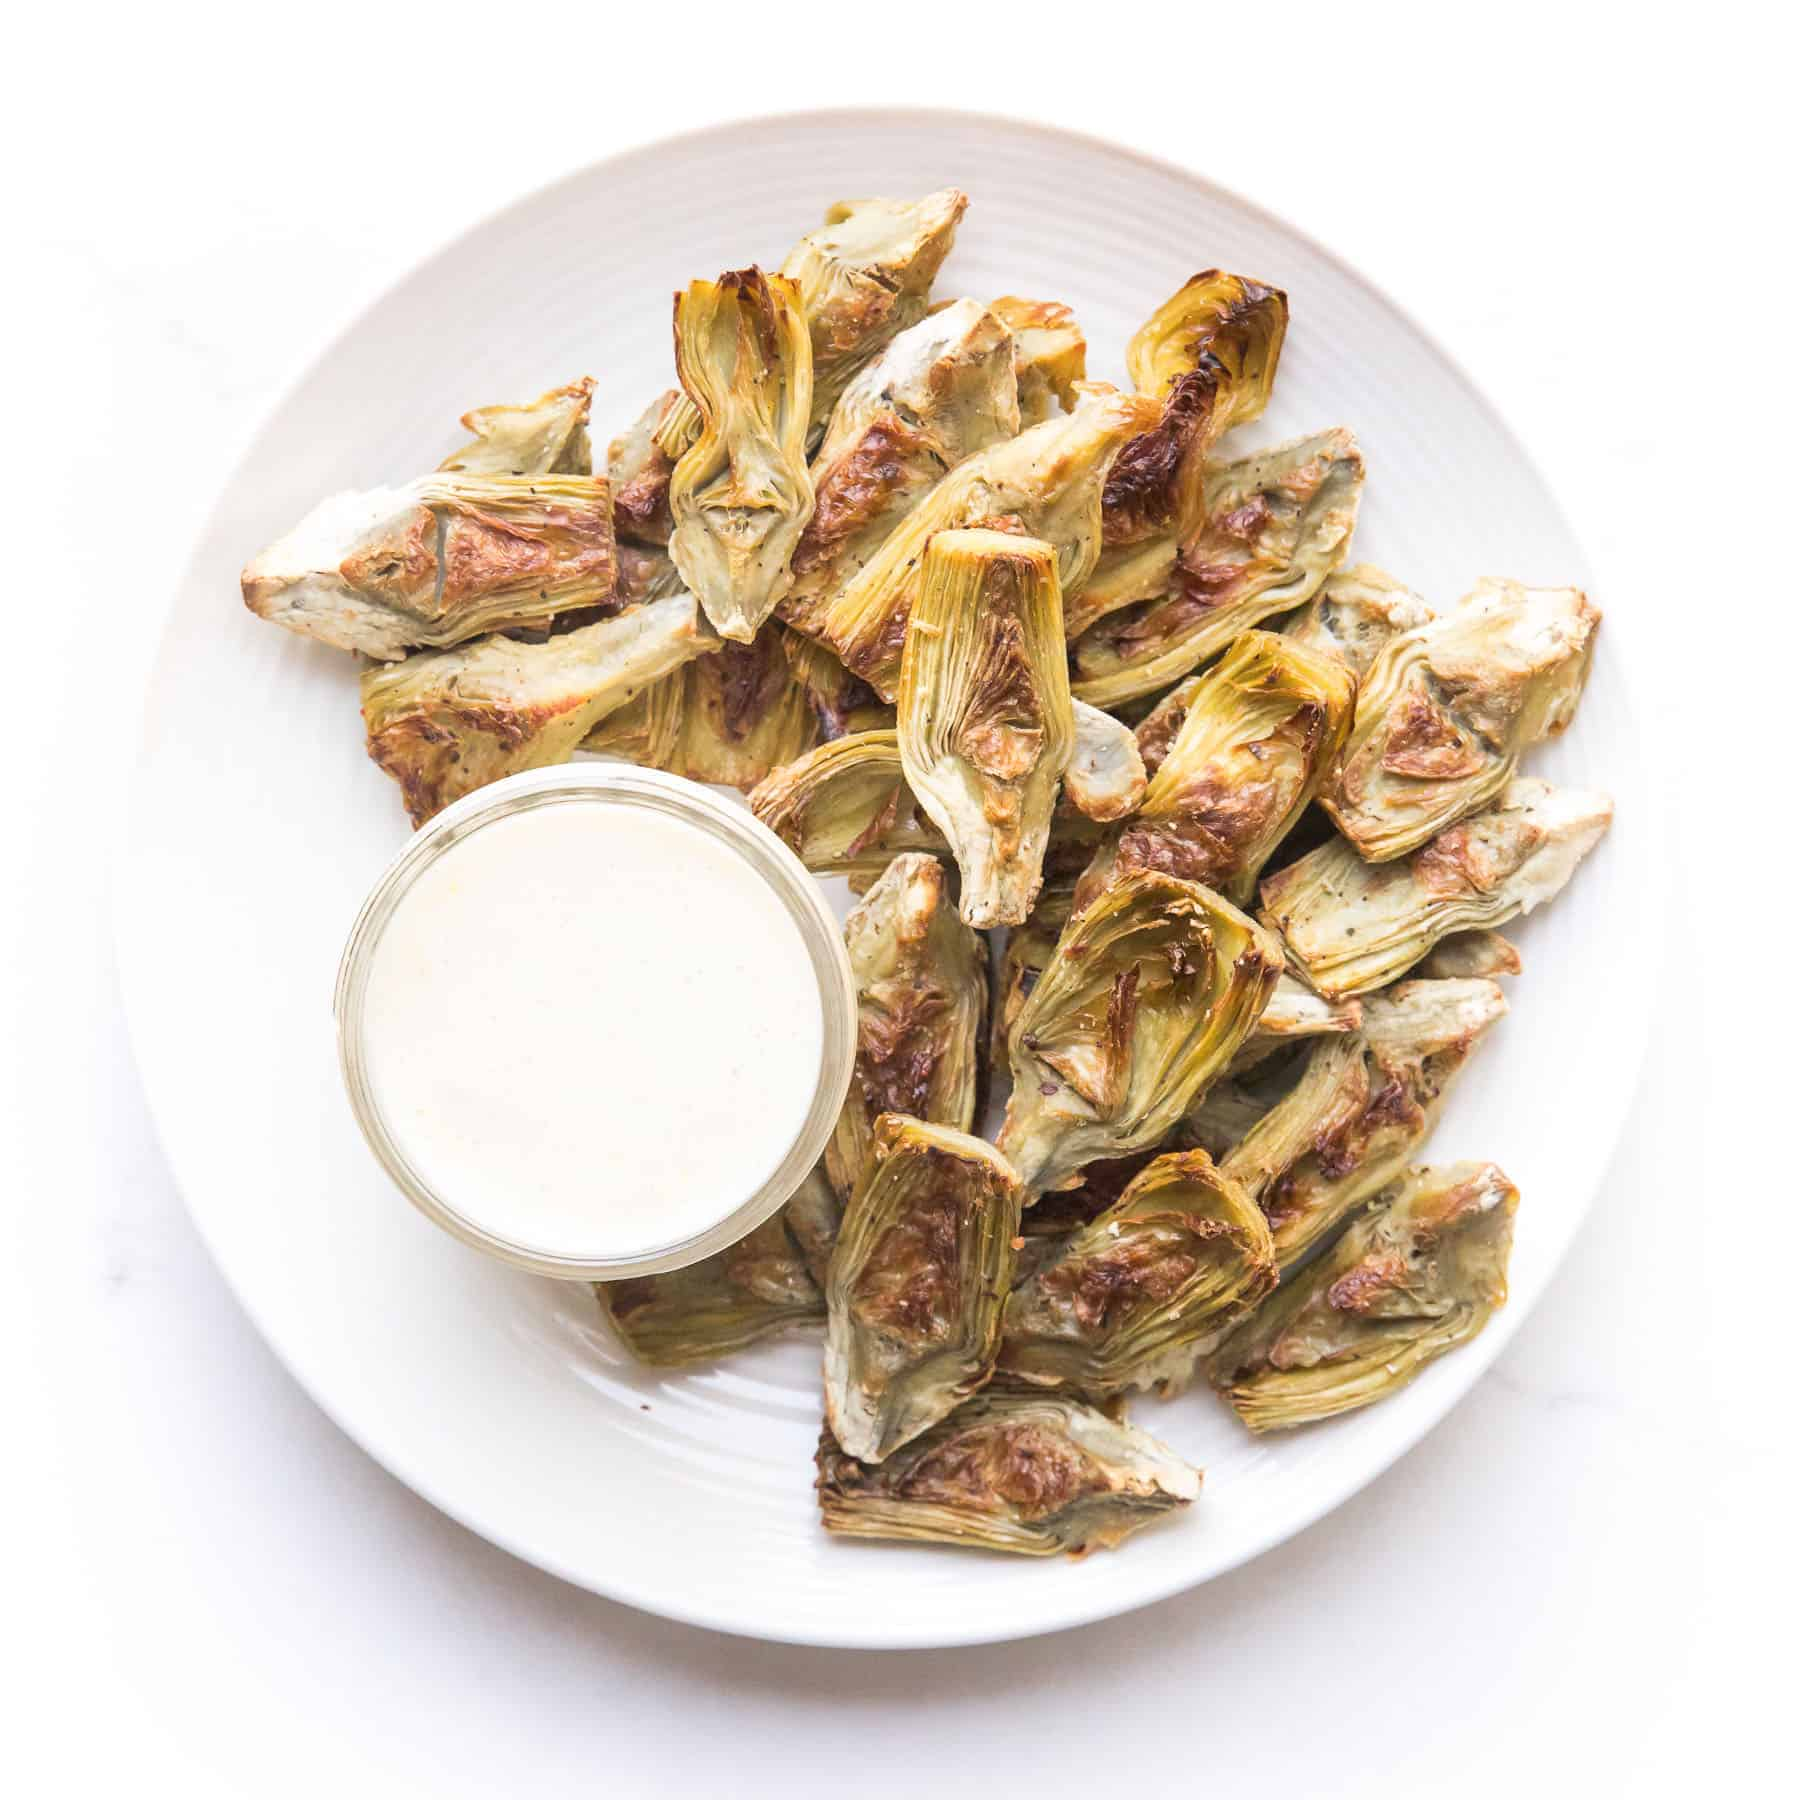 roasted artichokes on a white plate with a white dip on a white background